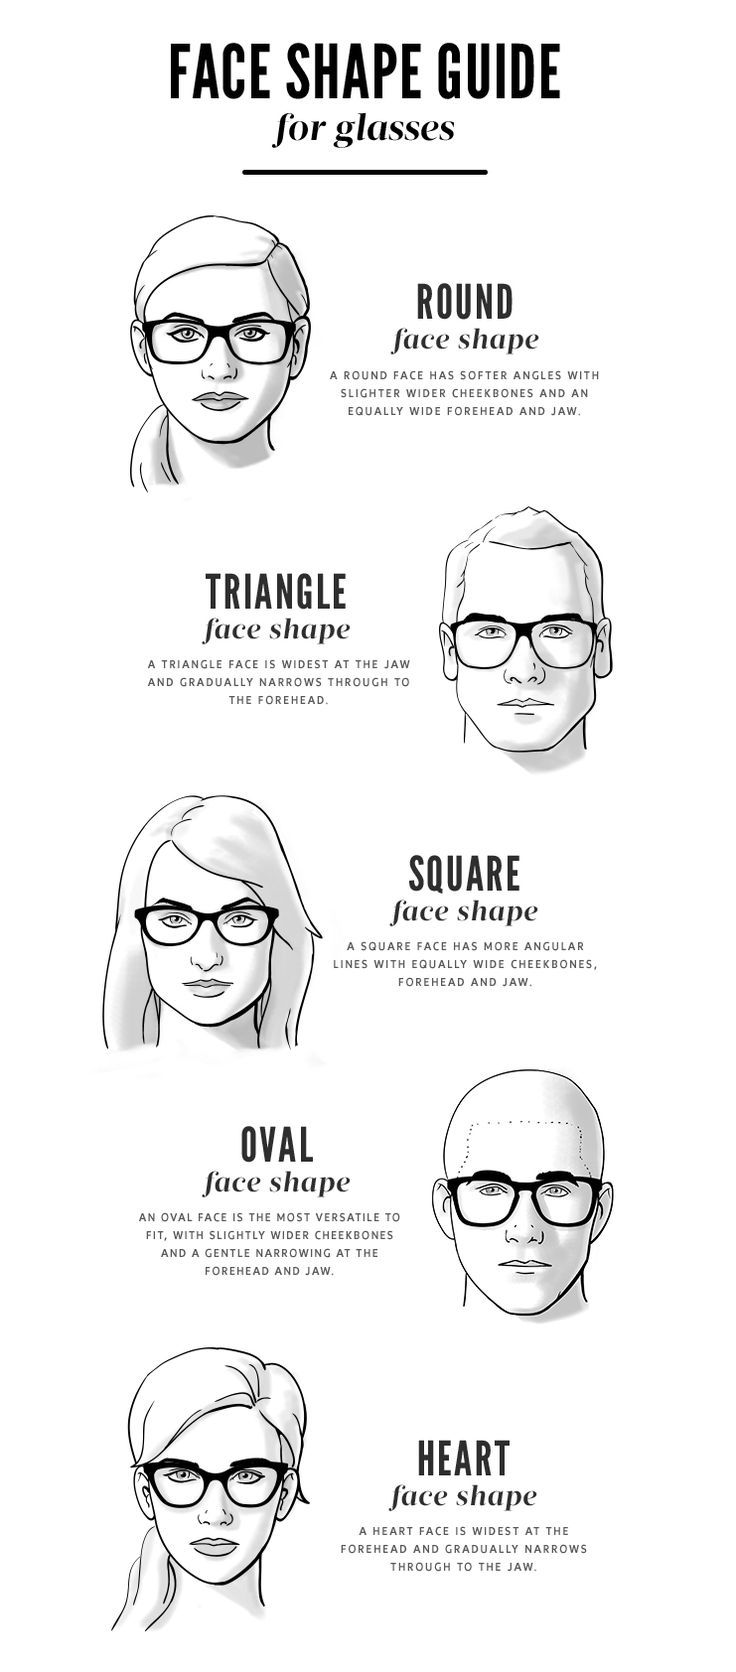 Best Glasses Frame For Face Shape : Face Shape Guide for Glasses Which glasses shape best ...